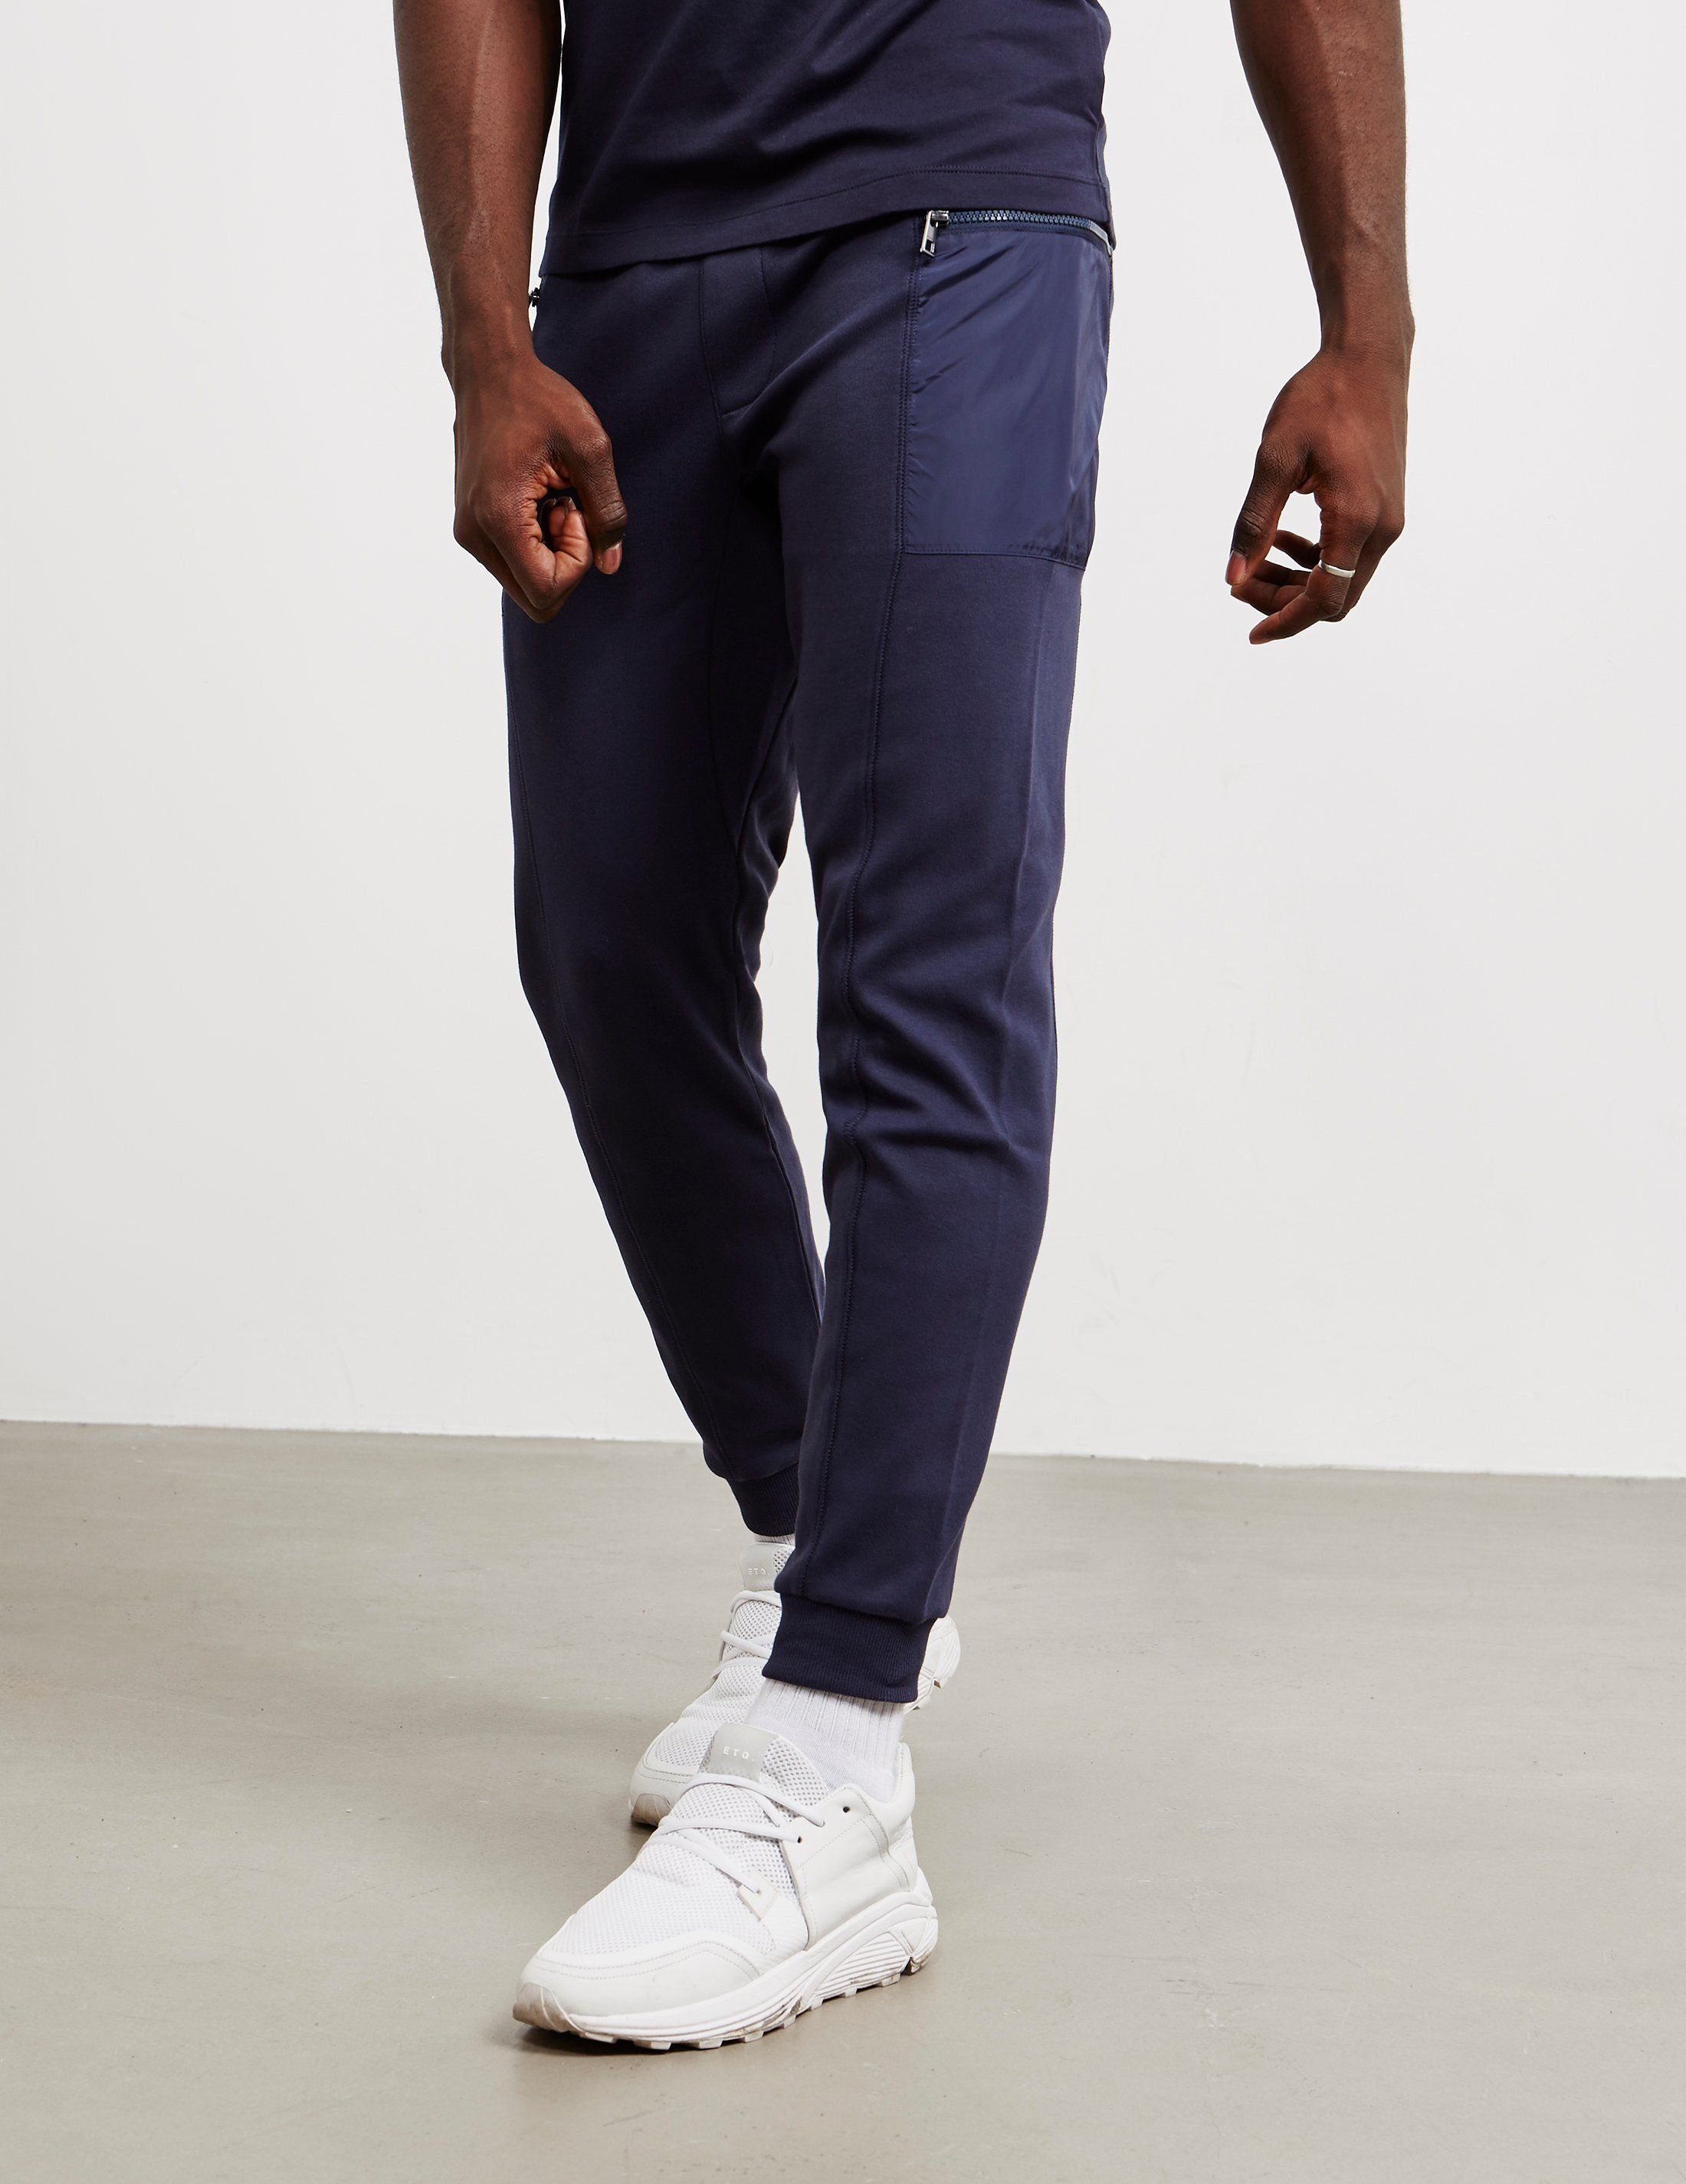 Michael Kors Panel Track Pants